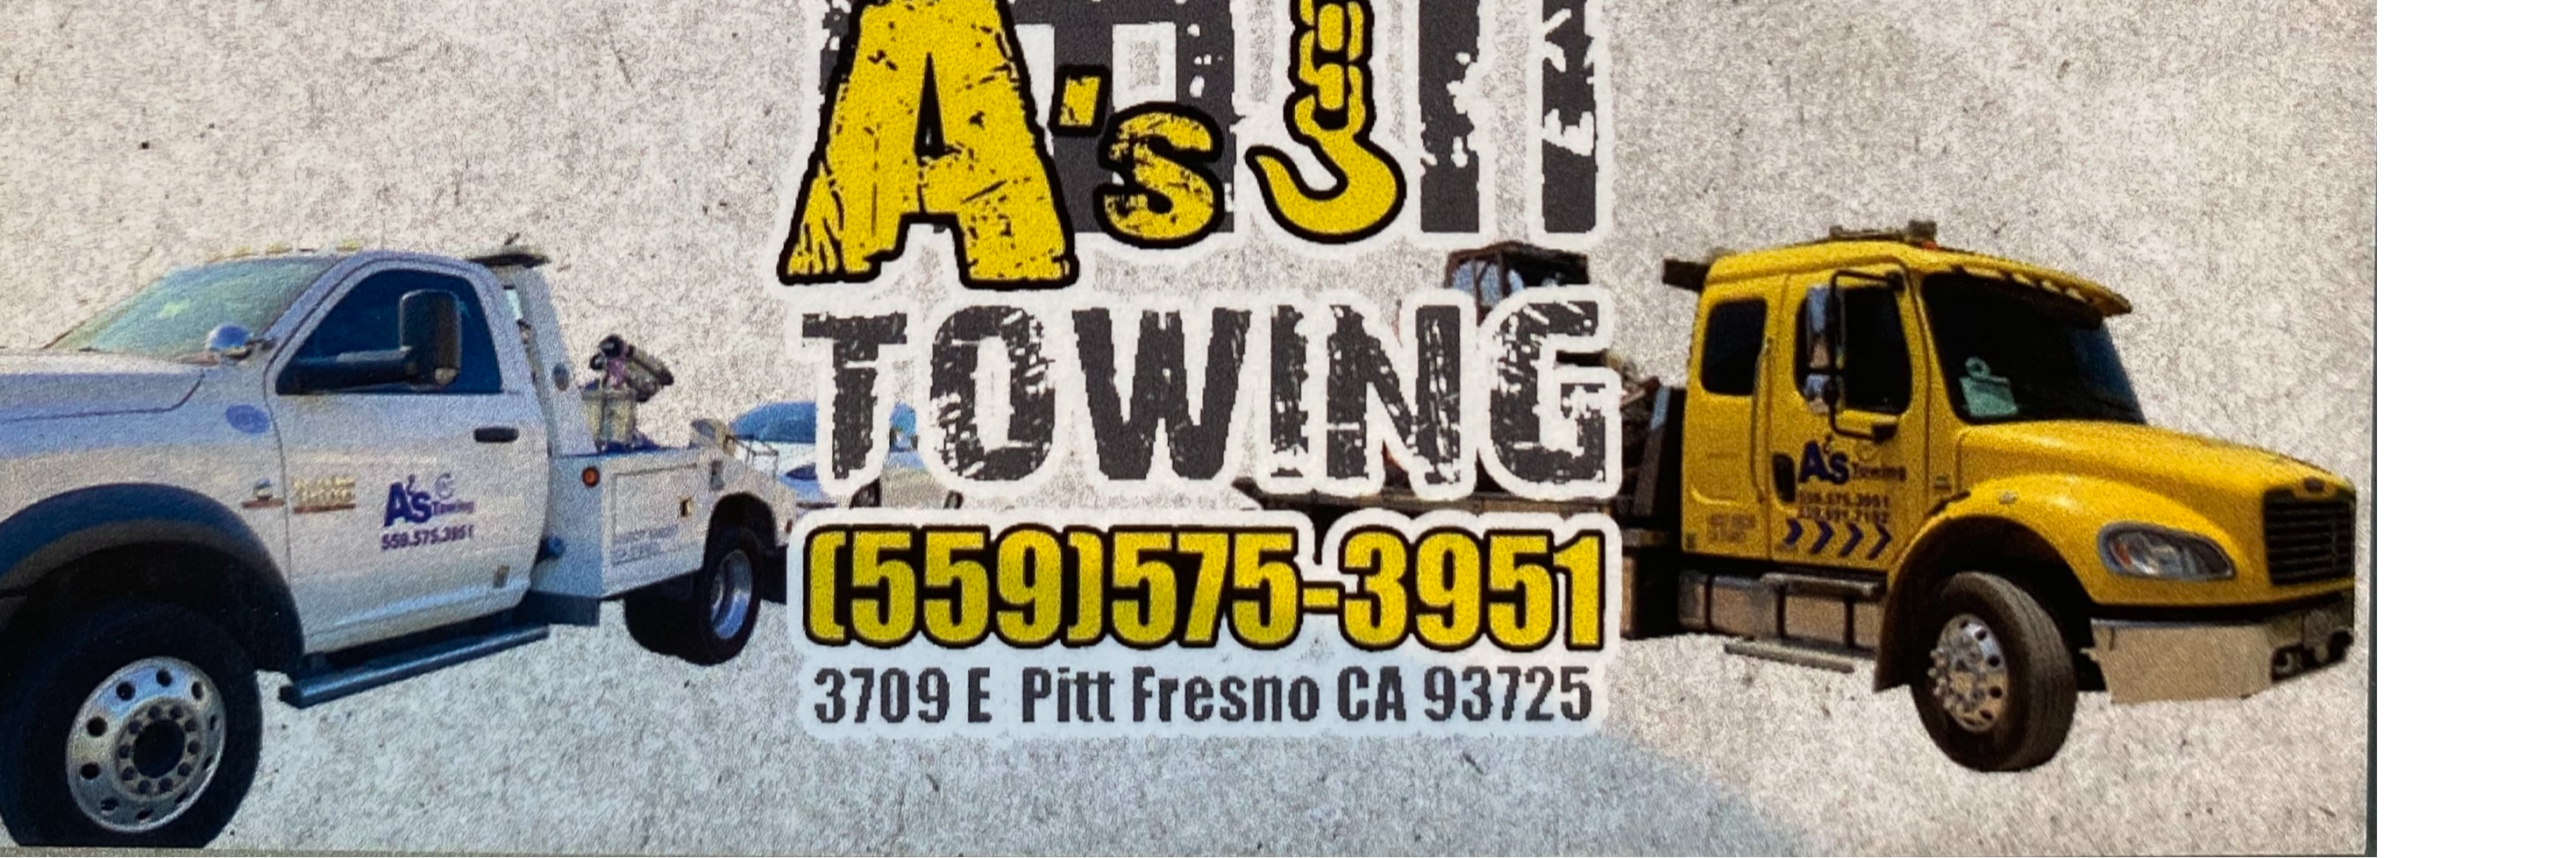 A's towing Towing.com Profile Banner